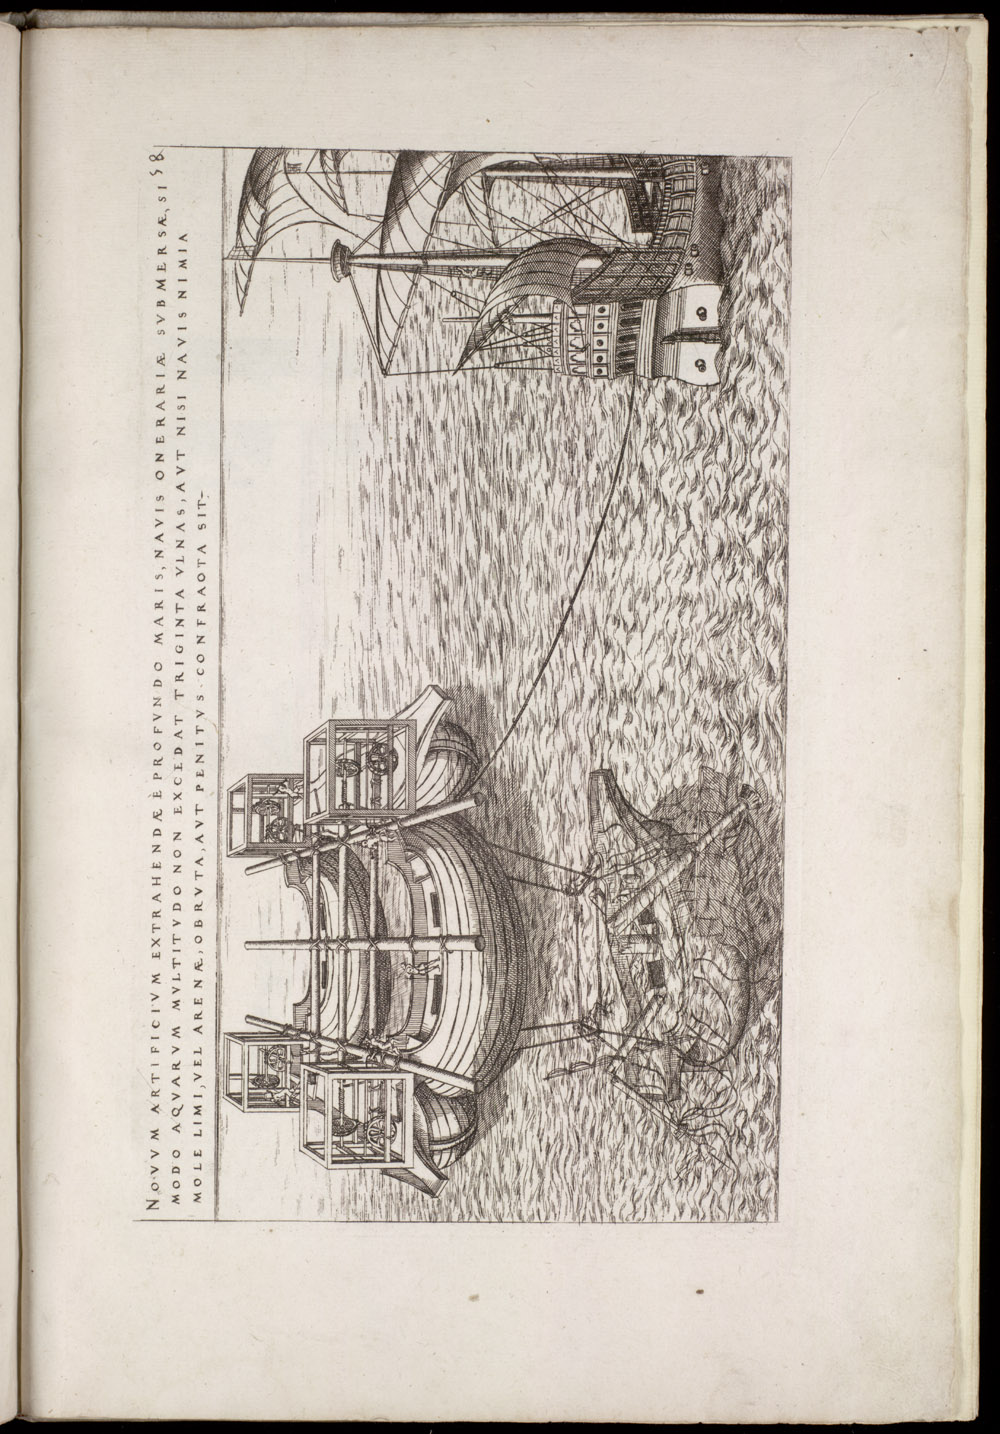 Plate 58 [Raising a sunken ship],  Image number:SIL4-2-149a